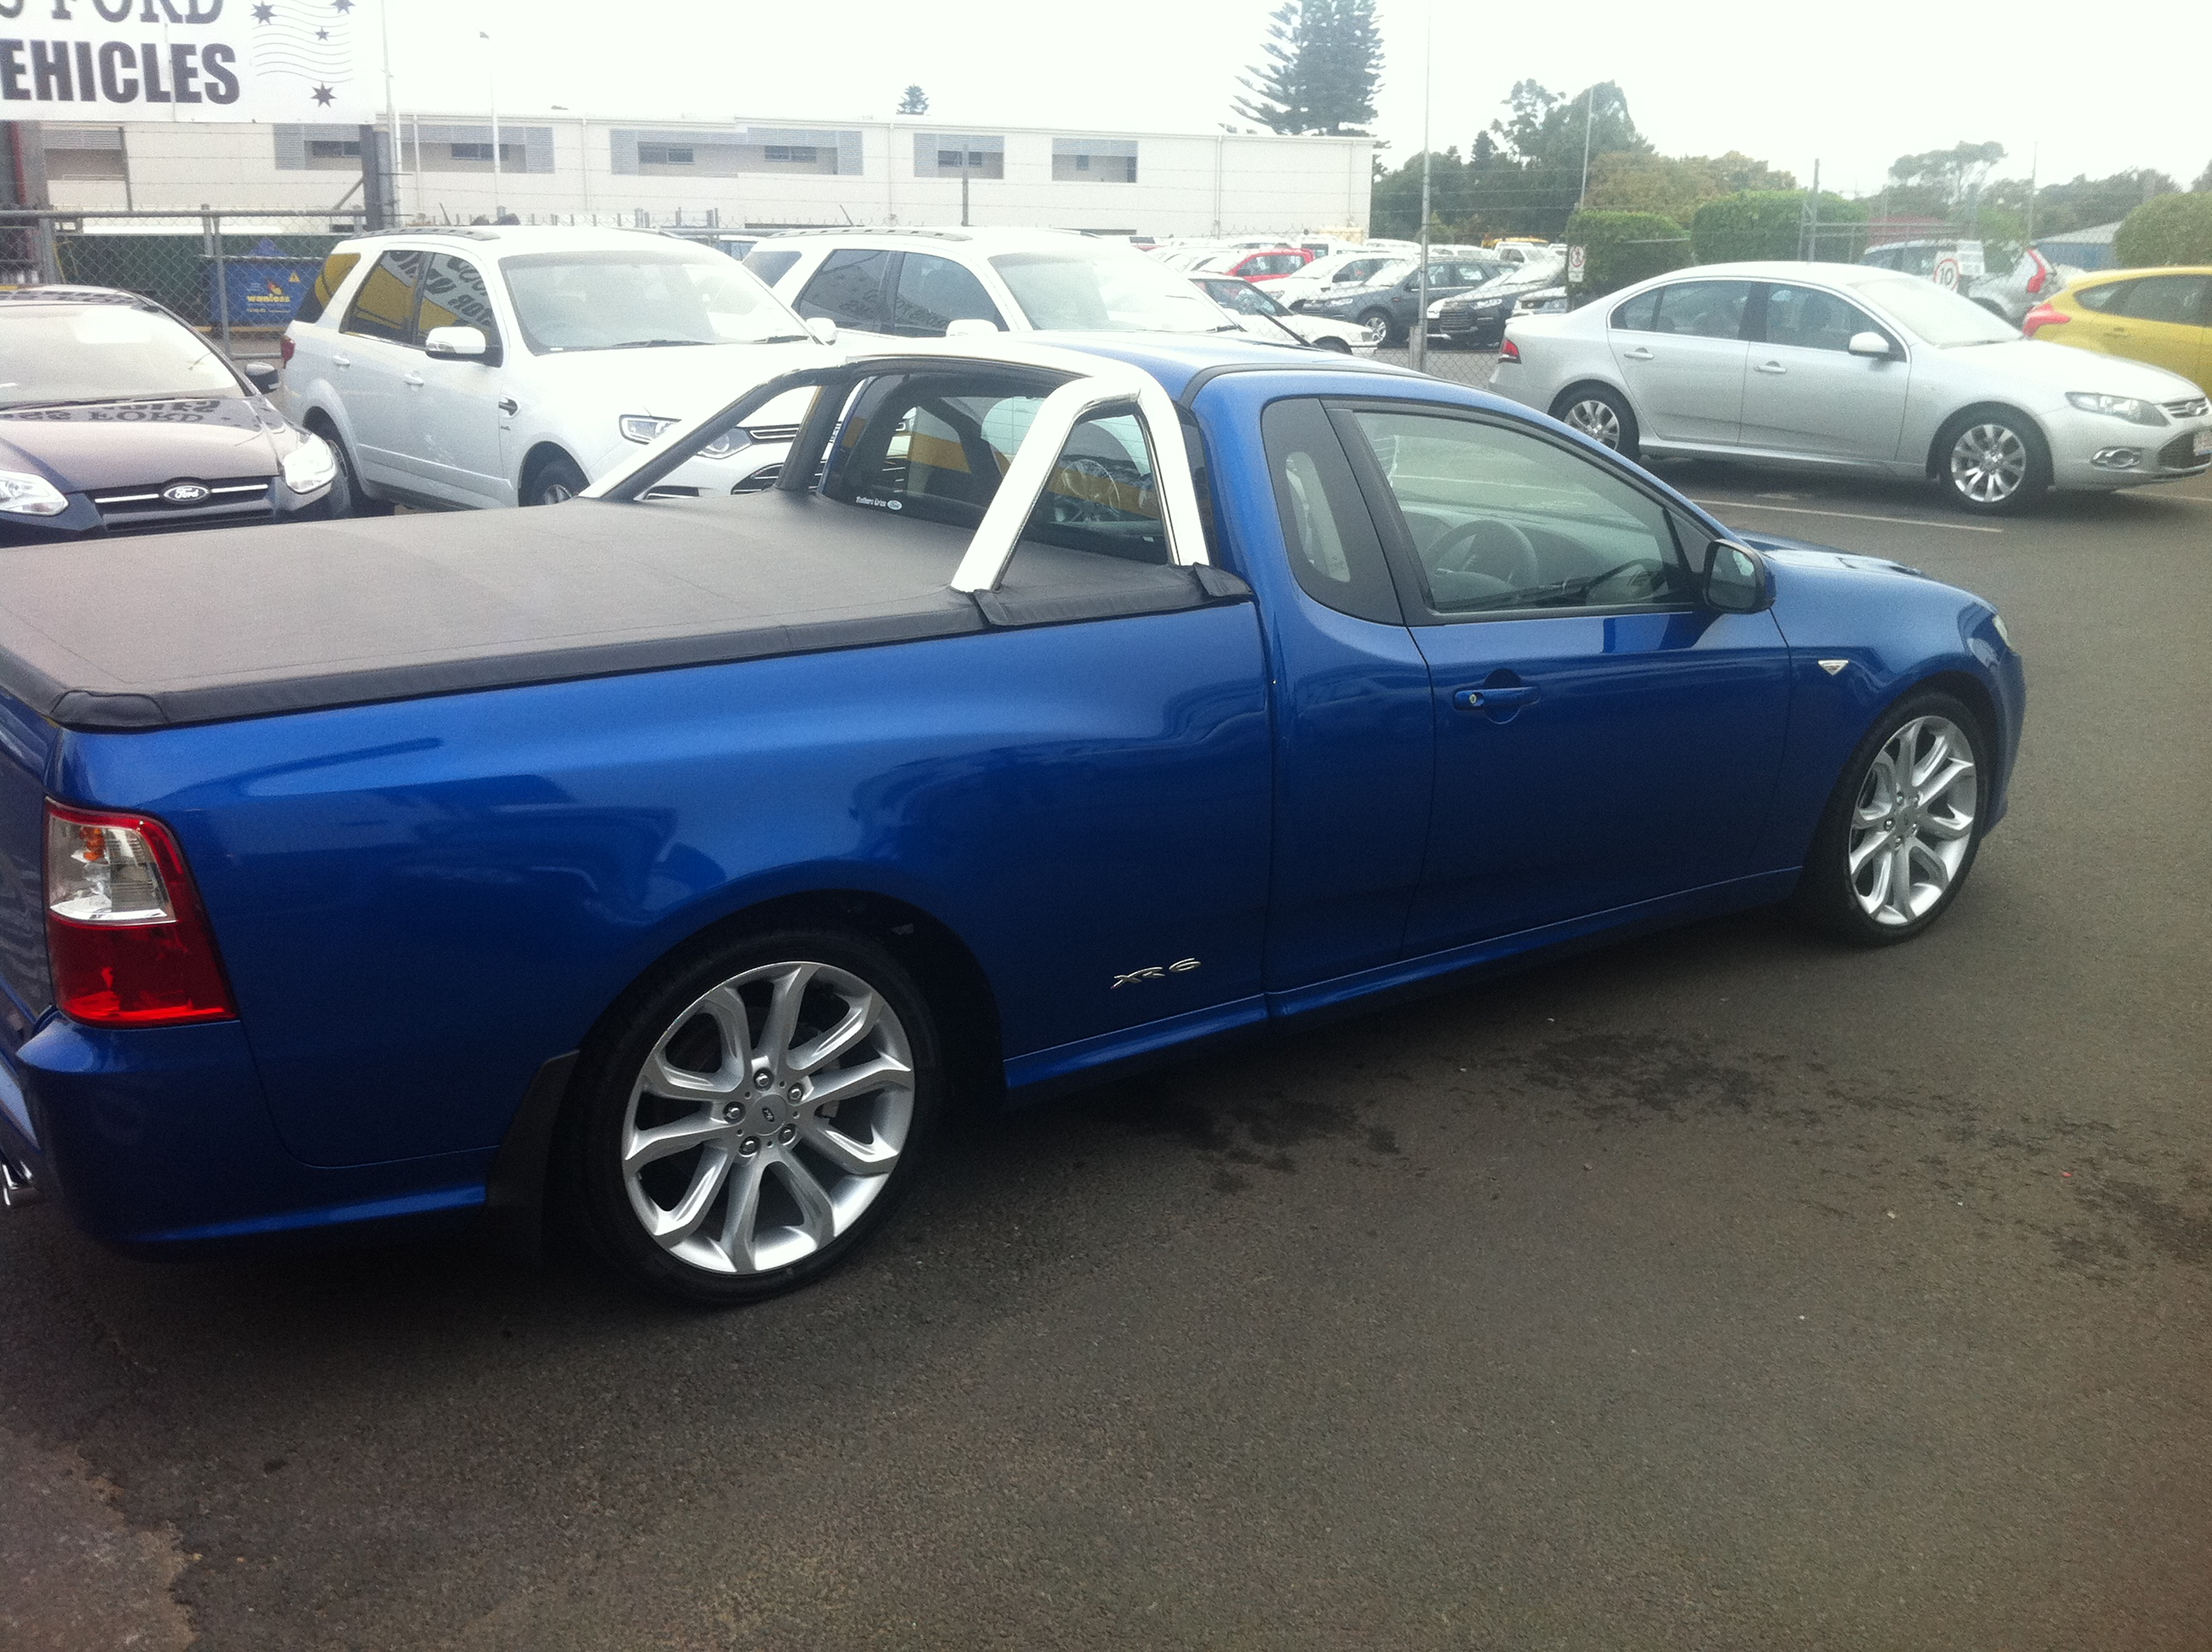 2012 Fg Xr6 Turbo - BoostCruising